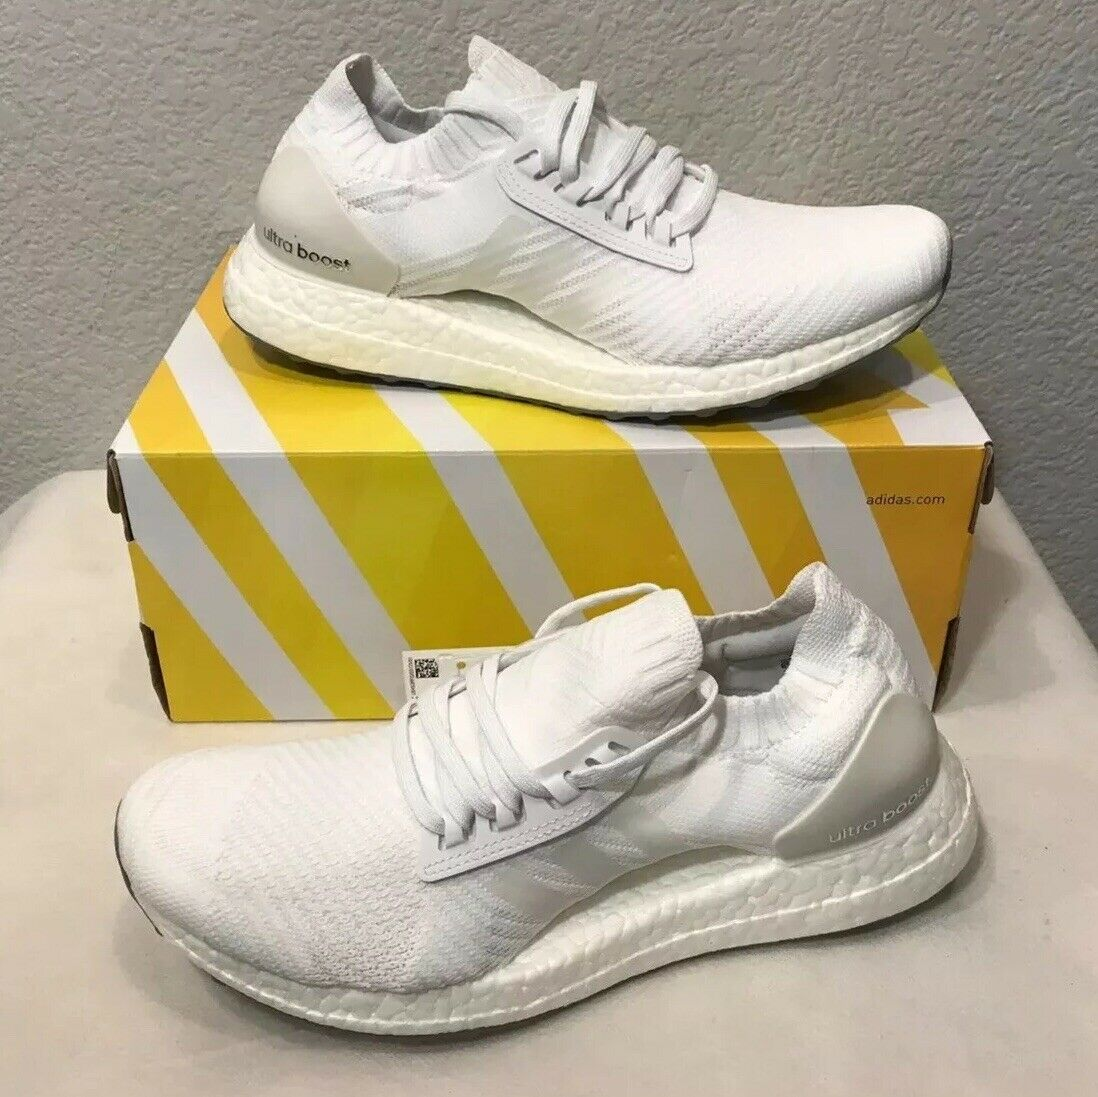 New Women's Adidas UltraBOOST X shoes WhiteBB6161Size 8.5